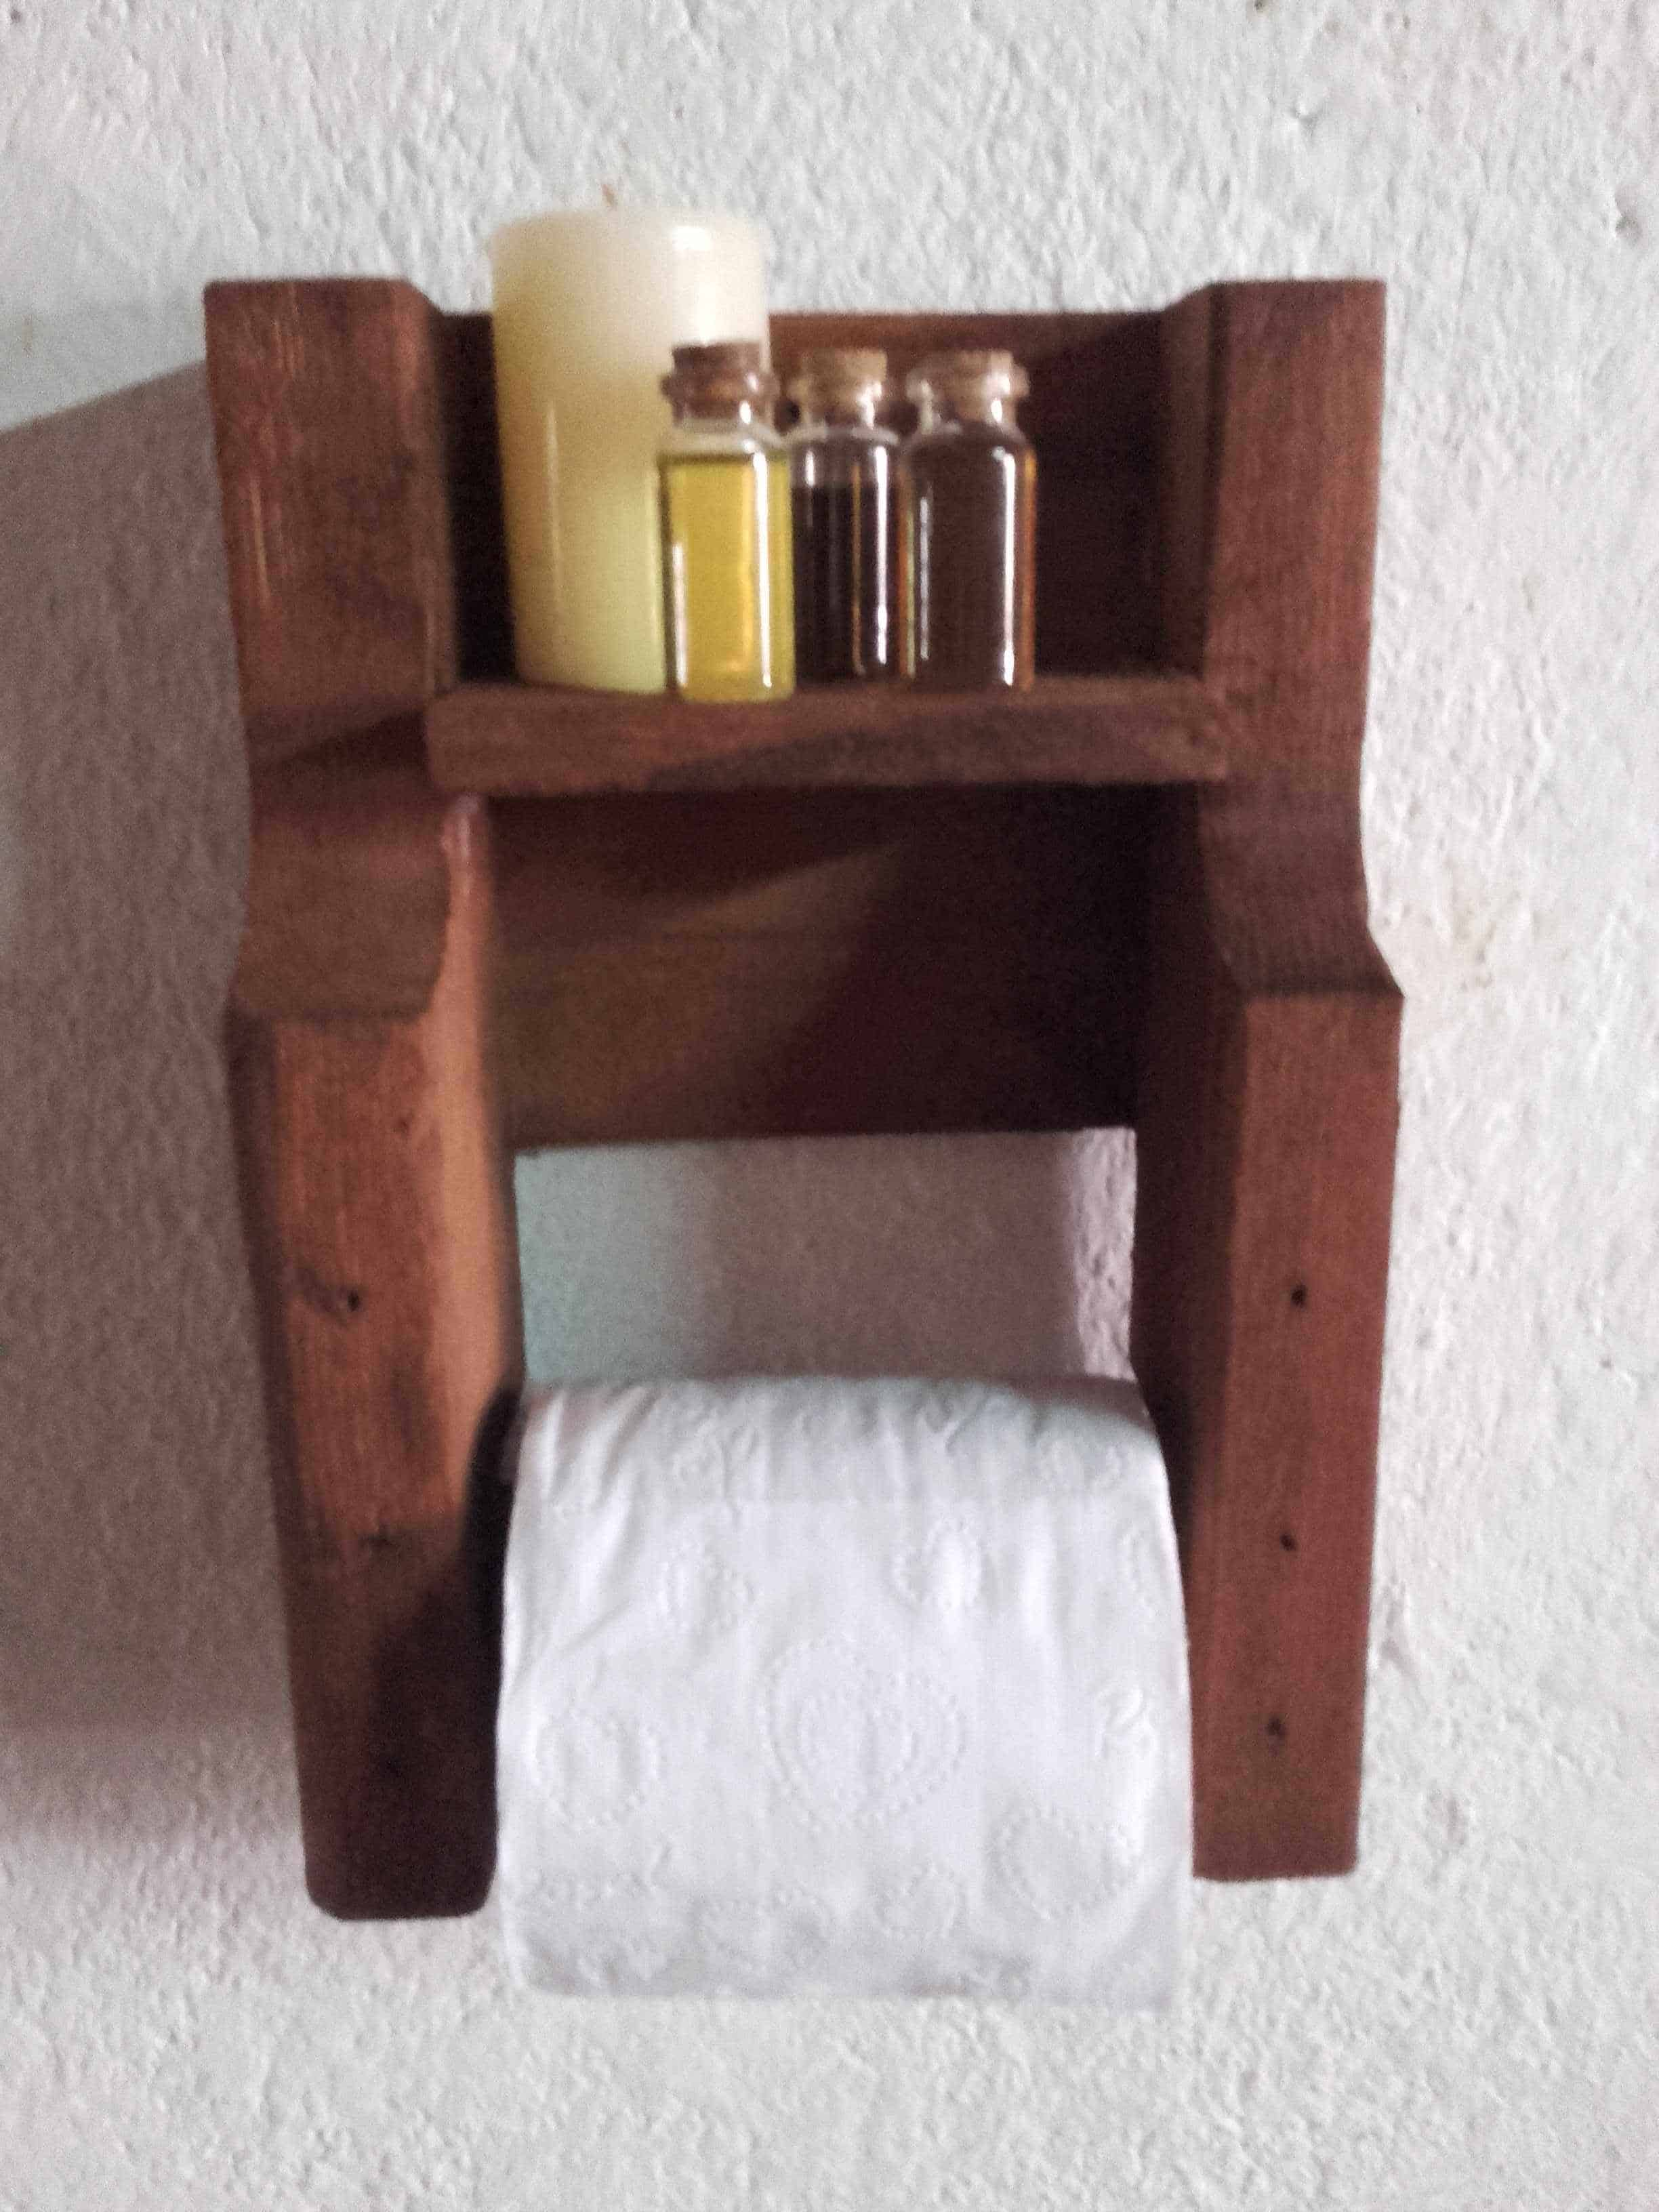 Pallet toilet paper holder o 1001 pallets for Best brand of paint for kitchen cabinets with paper candle holder